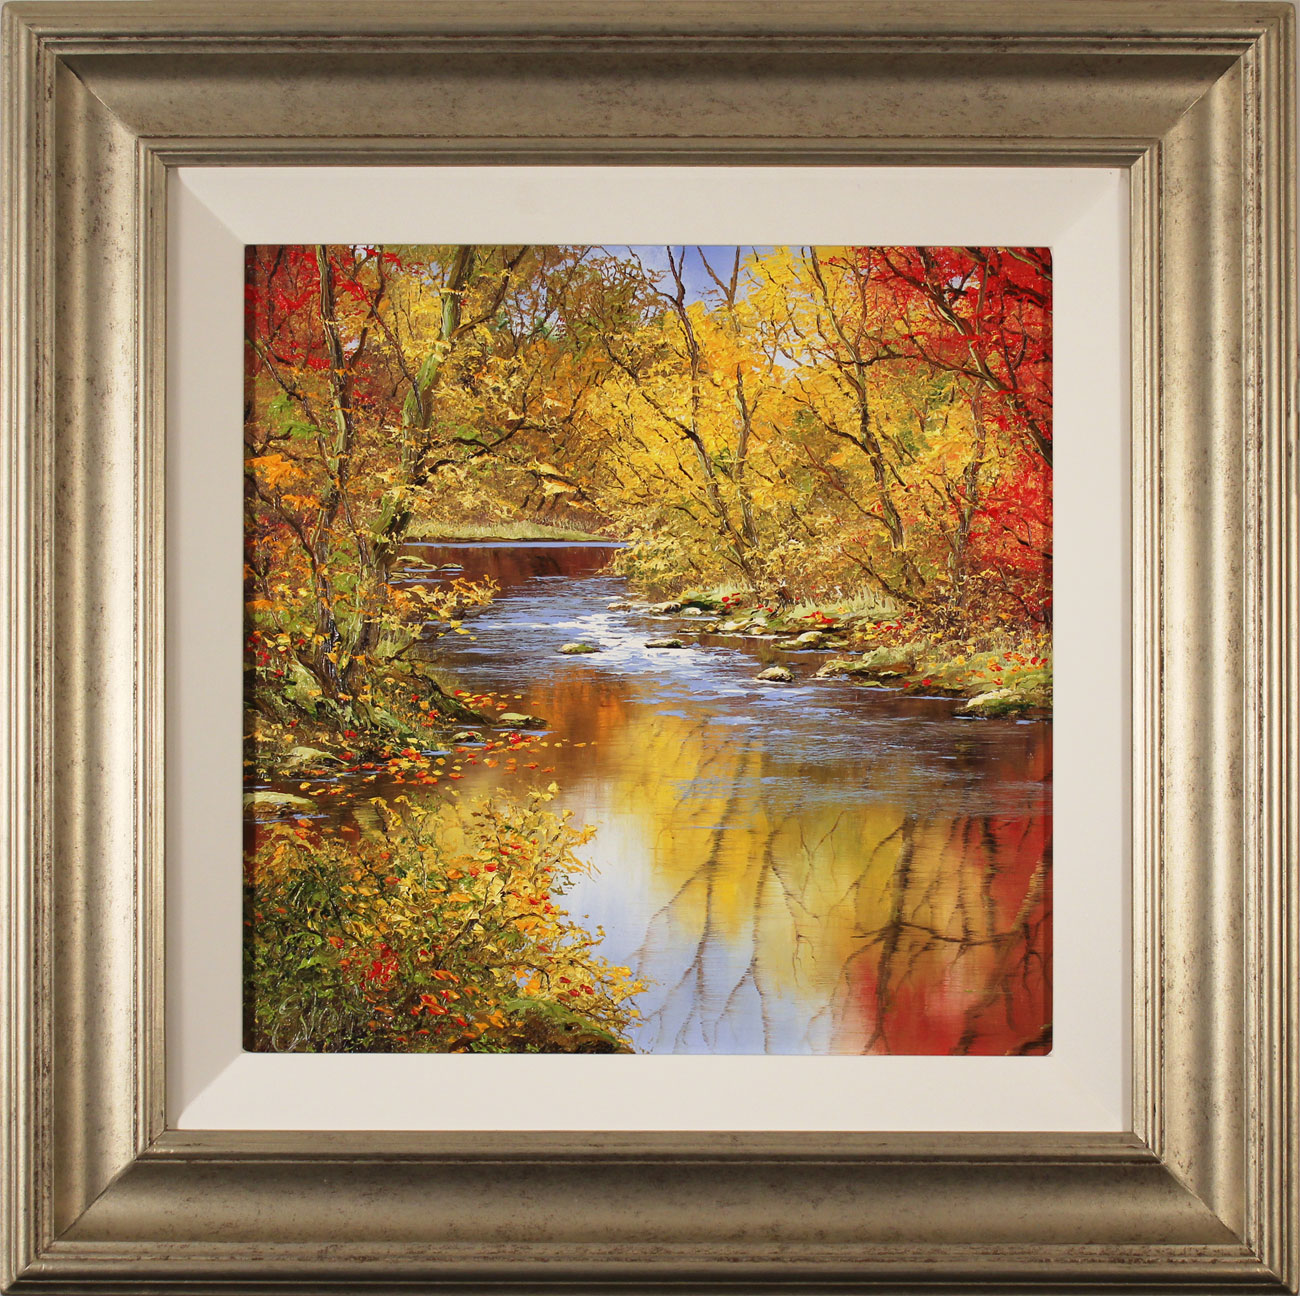 Terry Evans, Original oil painting on canvas, Colours of Autumn, click to enlarge